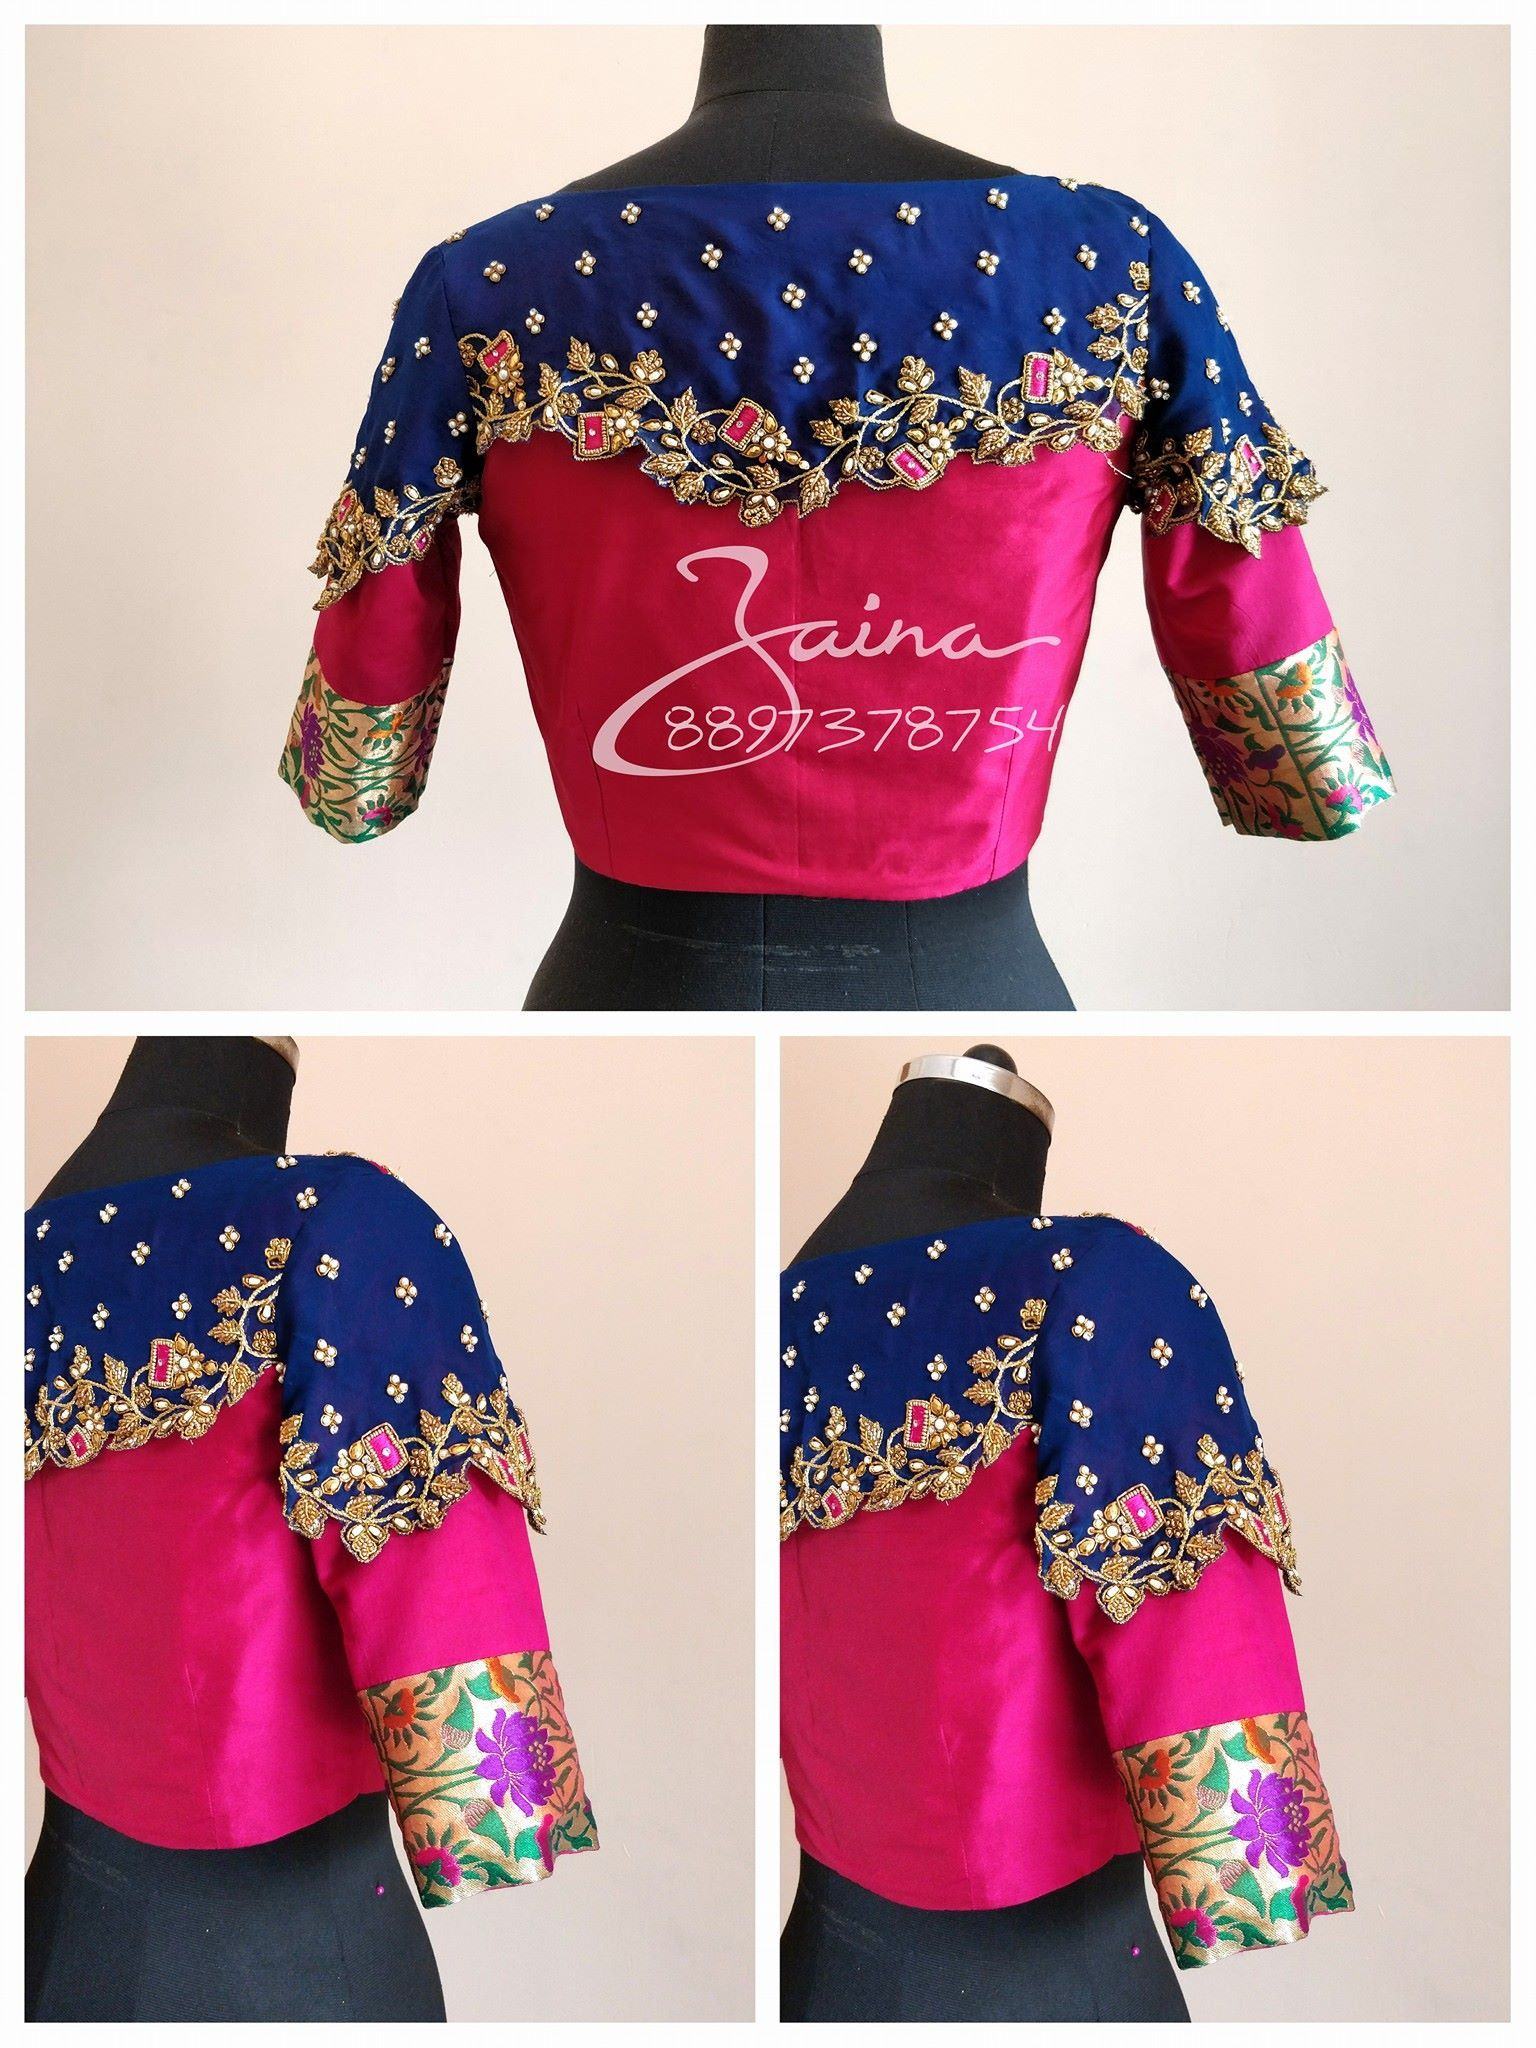 Wedding saree blouse design red beautiful pink and royal blue color trendy bridal designer blouse